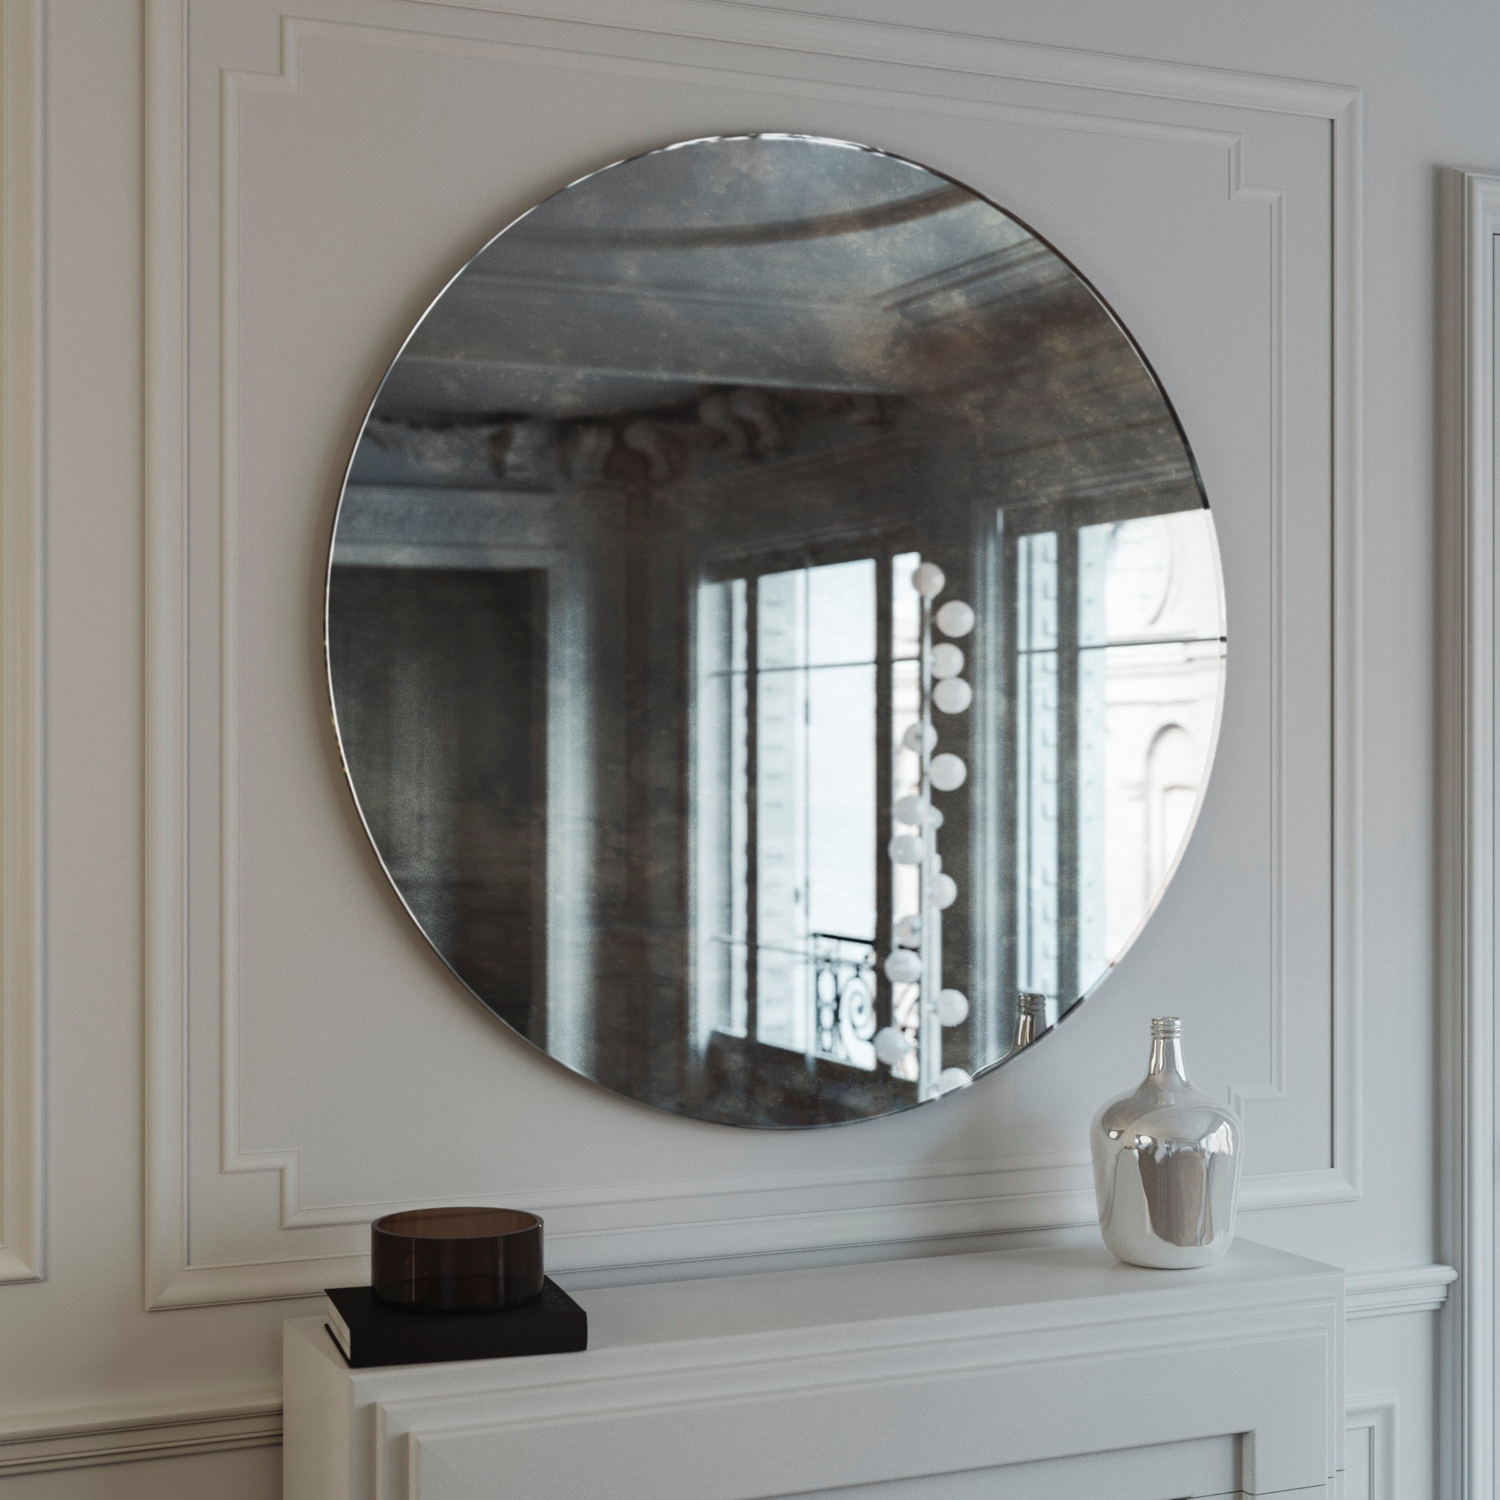 Antiqued Wall Mirrors Within Most Popular Antiqued Wall Mirror. Antiqued Glass Mirror. Custom Antiqued Glass Mirror.  Round, Frameless Hanging Wall Mirror (View 7 of 20)